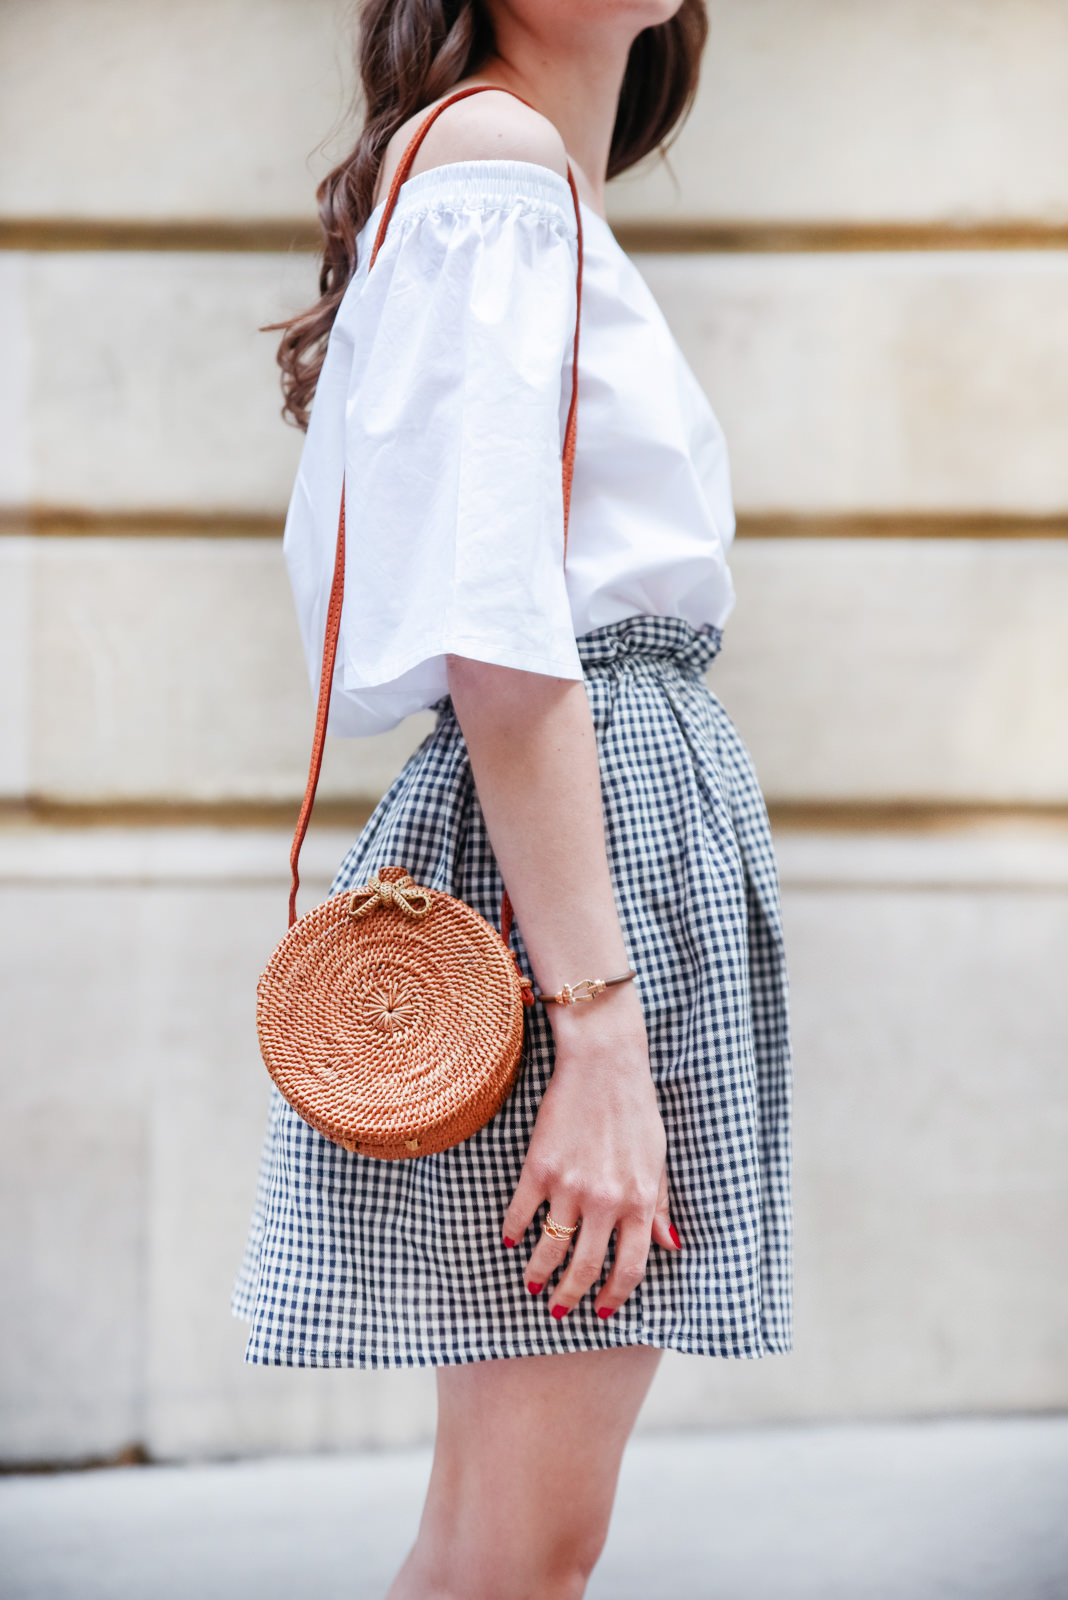 Blog-Mode-And-The-City-Lifestyle-5-petites-choses-223-sac-pepyth